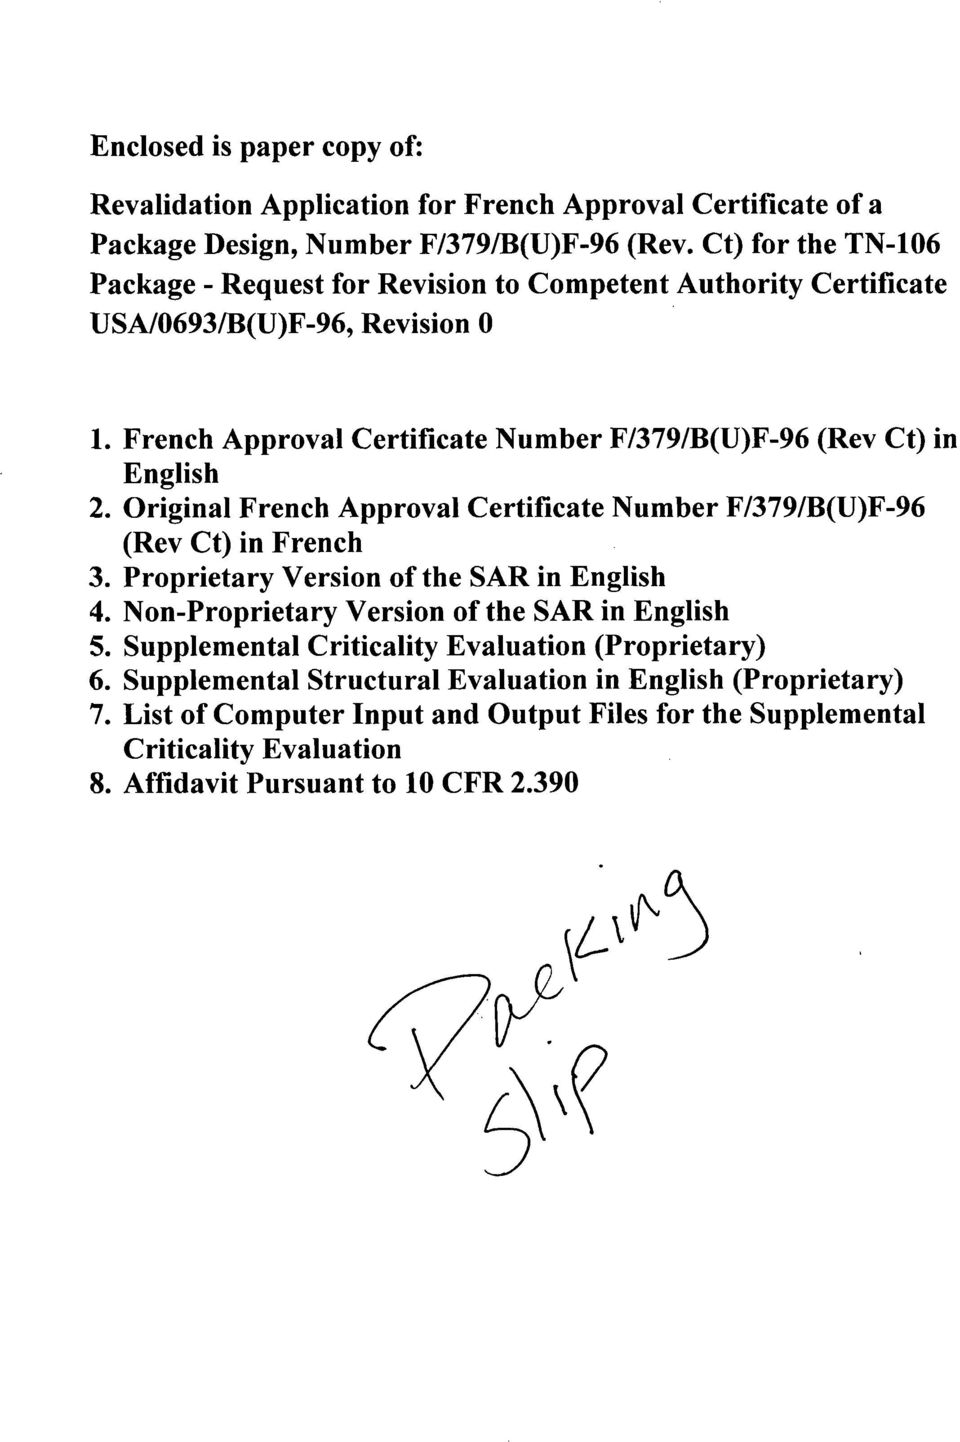 French Approval Certificate Number F/379/B(U)F-96 (Rev Ct) in English 2. Original French Approval Certificate Number F/379/B(U)F-96 (Rev Ct) in French 3.